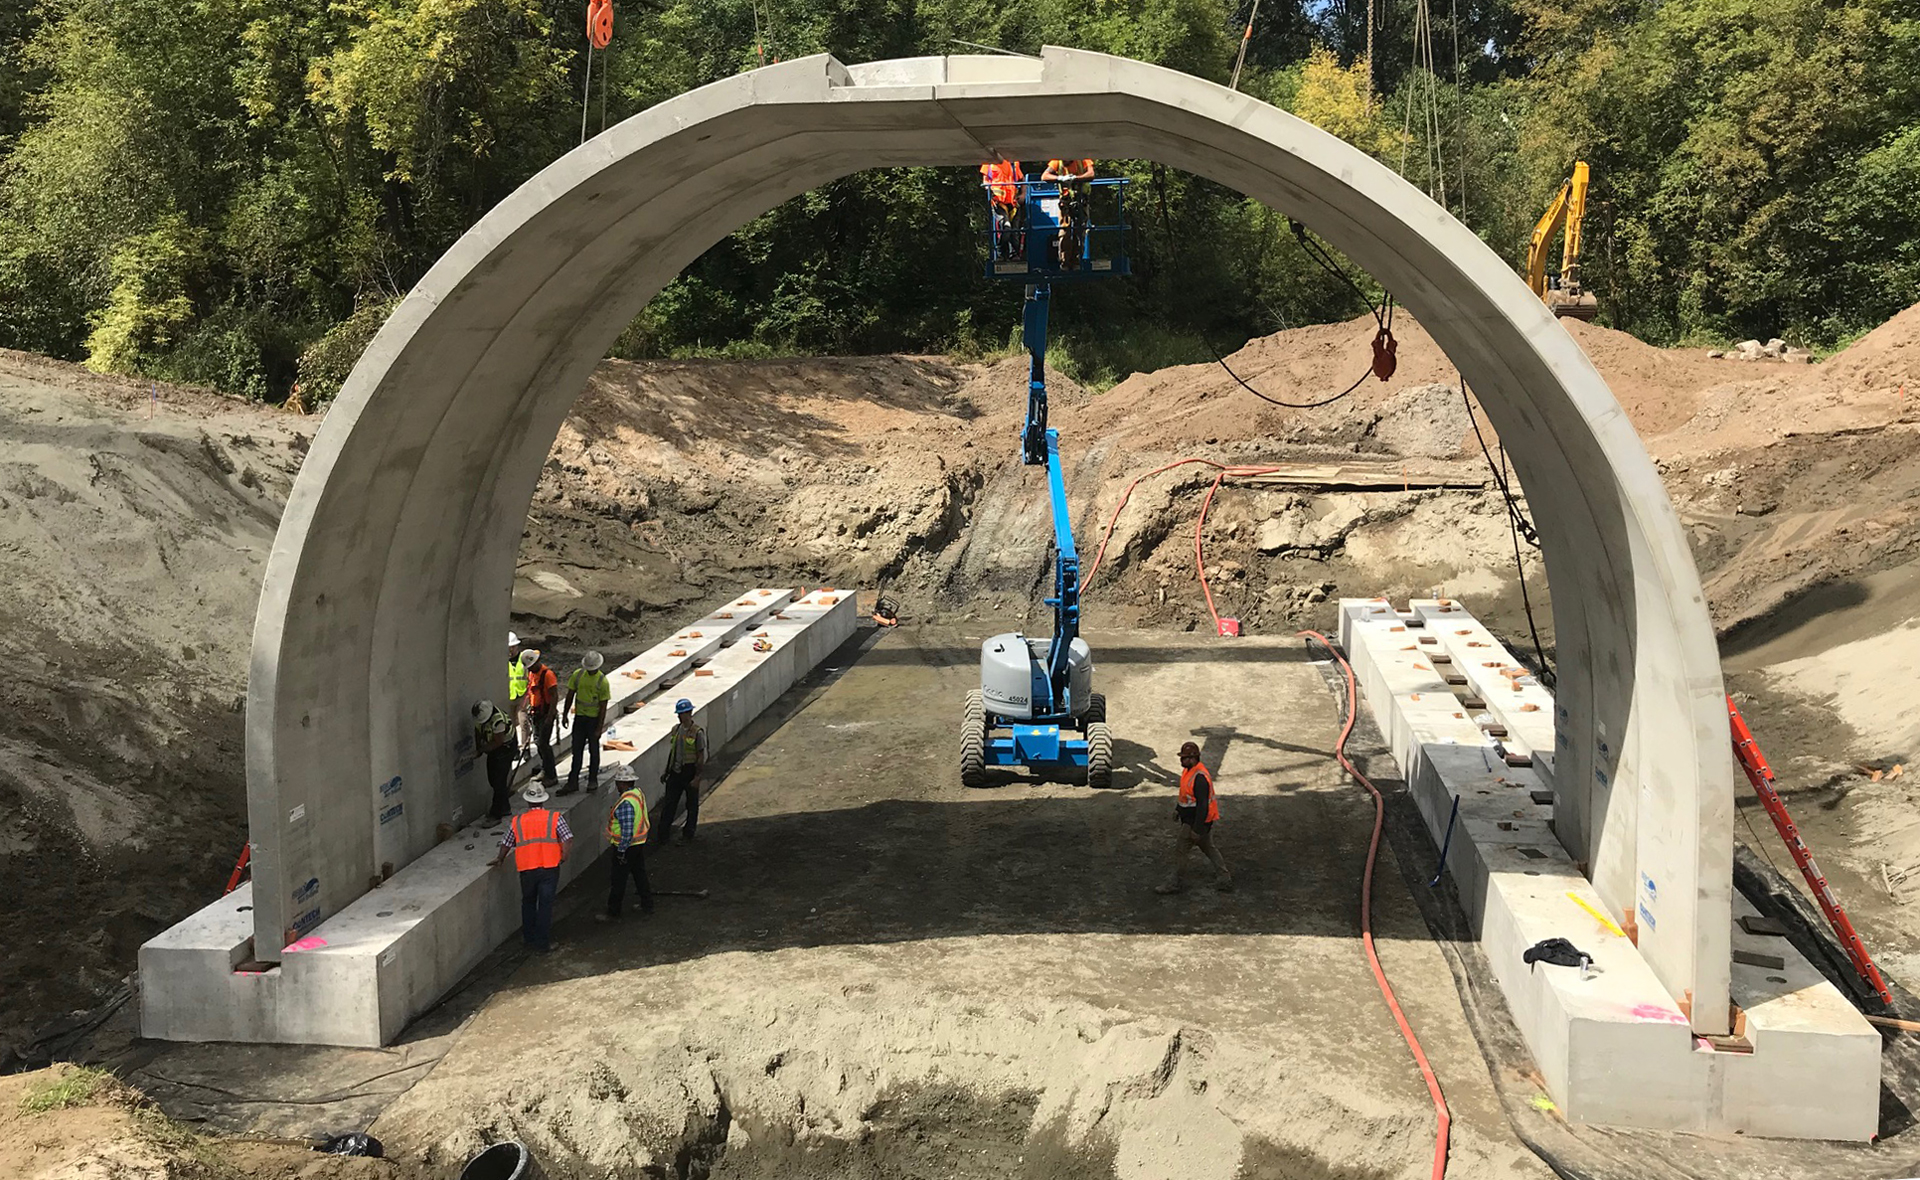 The crew has been hard at work constructing the new 40-foot culvert that replaces the previous 10-foot culvert at Main Avenue and Gee Creek in Ridgefield, WA.